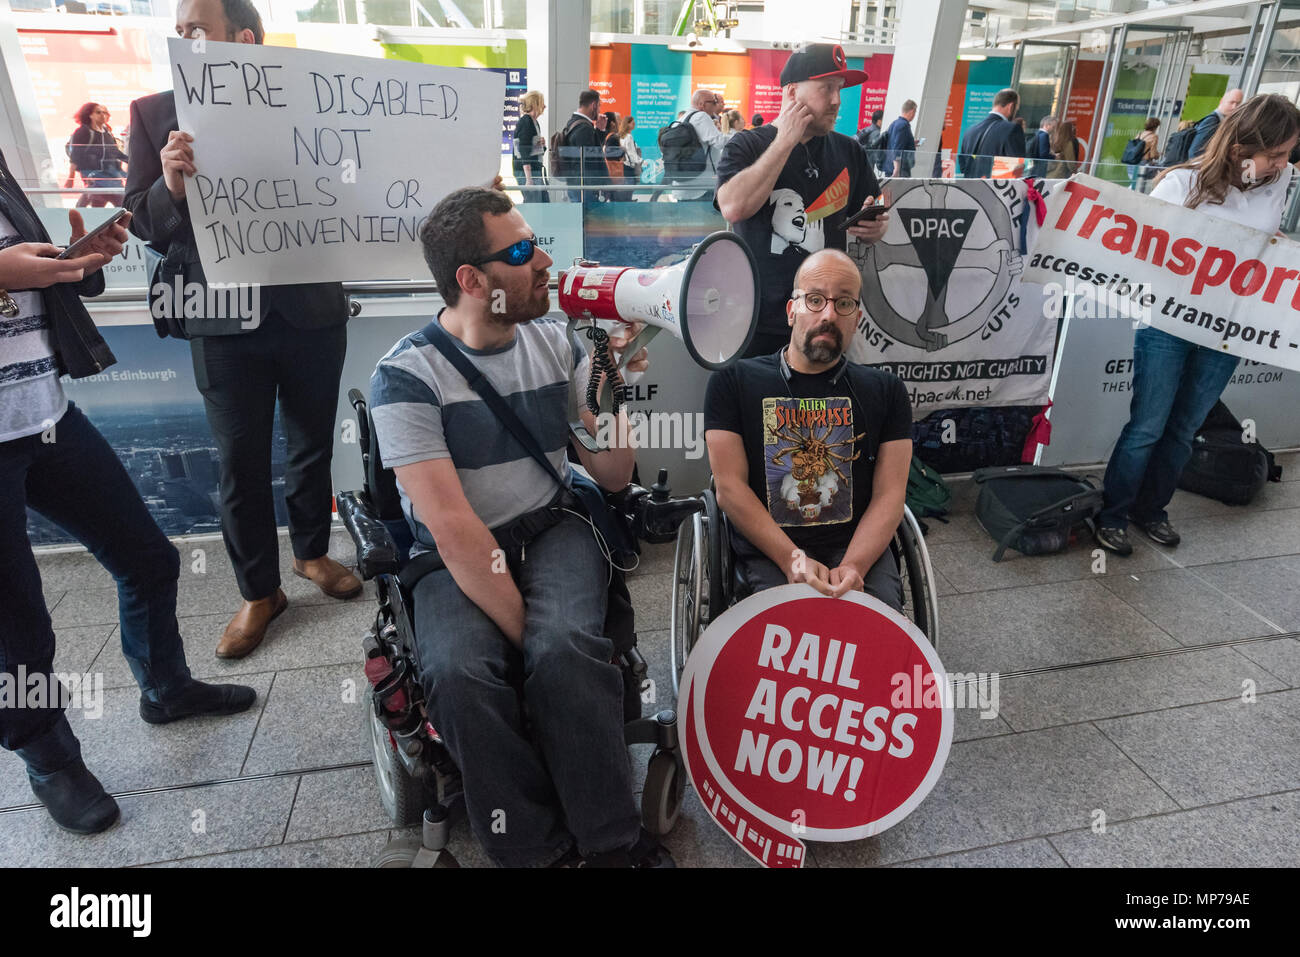 London, UK. 21st May 2018. A DPAC protester in a wheelchair speaks at the 'People's Picket' by disabled rail passengers from Disabled People Against Cuts along with the Association of British Commuters and RMT members outside London Bridge station. GTR uses a staff training guide in which they are dehumanised as 'PRM's  and staff are instructed to leave wheelchair users on the platform, even when they have arranged and pre-booked a journey. Today's timetable changes include a reduced stopping time at stations. Credit: Peter Marshall/Alamy Live News - Stock Image